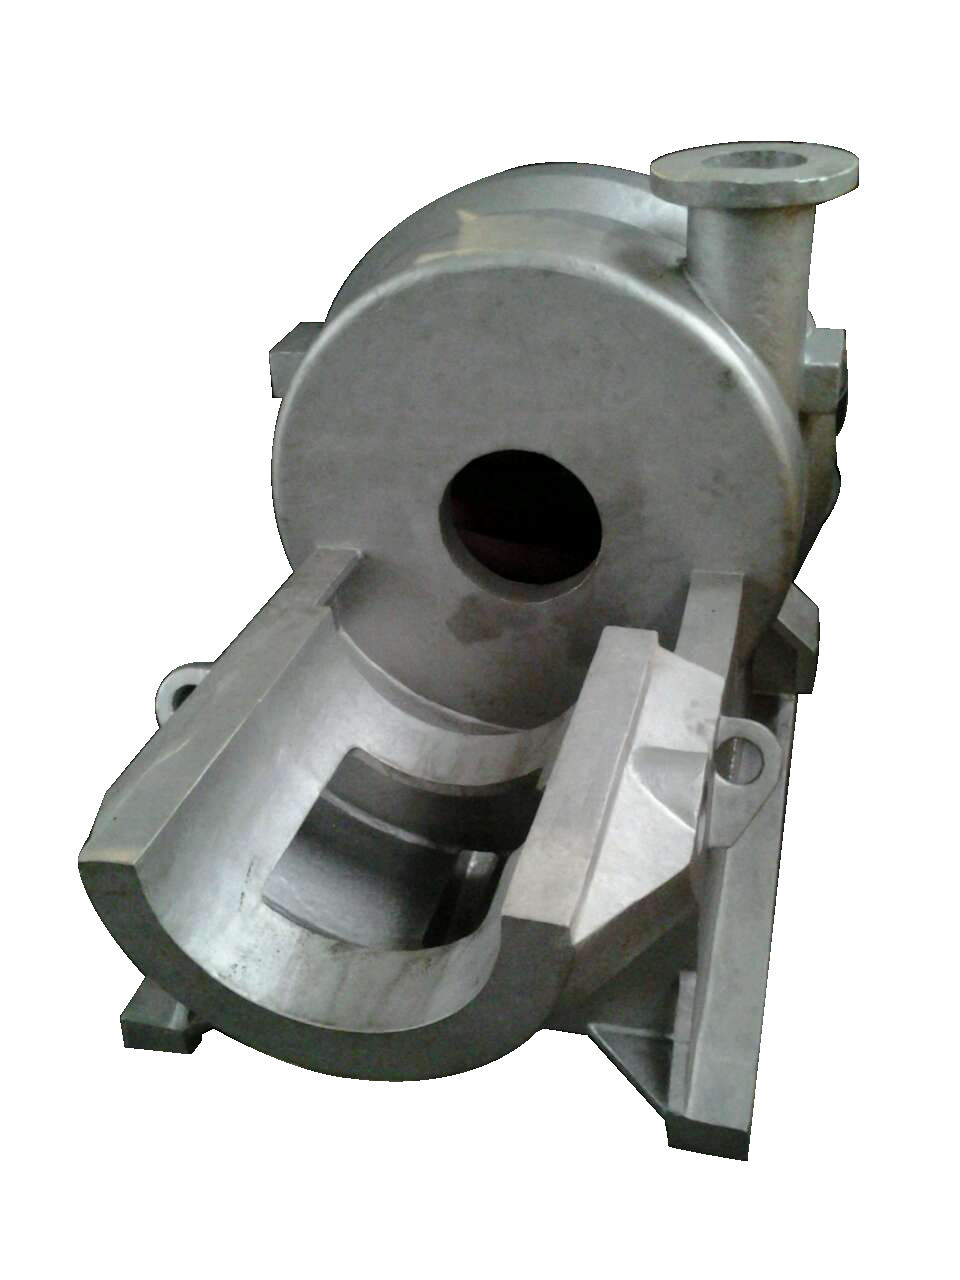 Pump Castings CNC Machining---a World Class Manufacturer